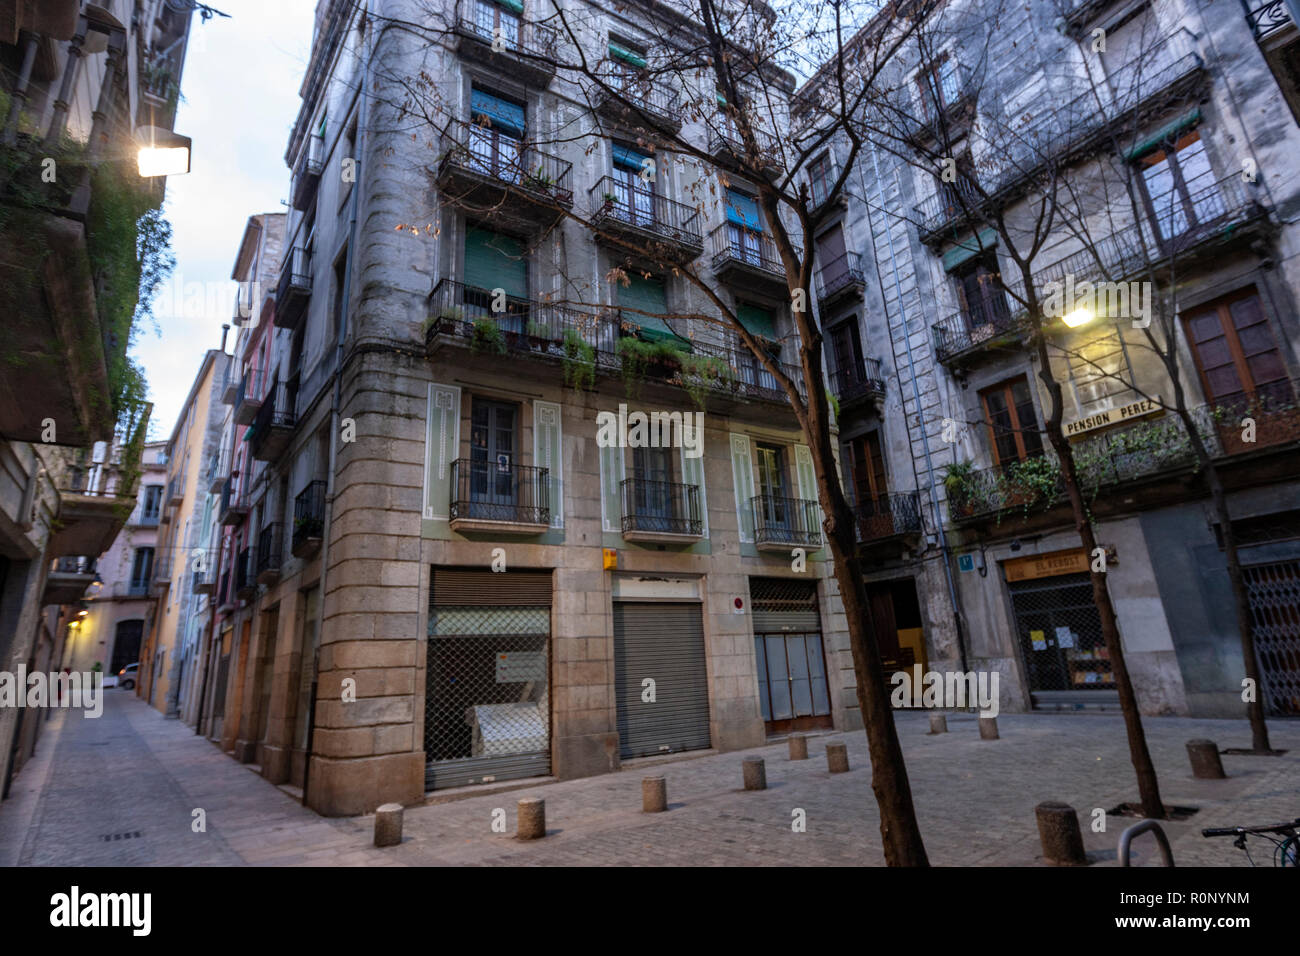 Plaça Bell-Lloc and the Carrer Nou del Teatre in the old city of Girona, Catalonia, Spain - Stock Image